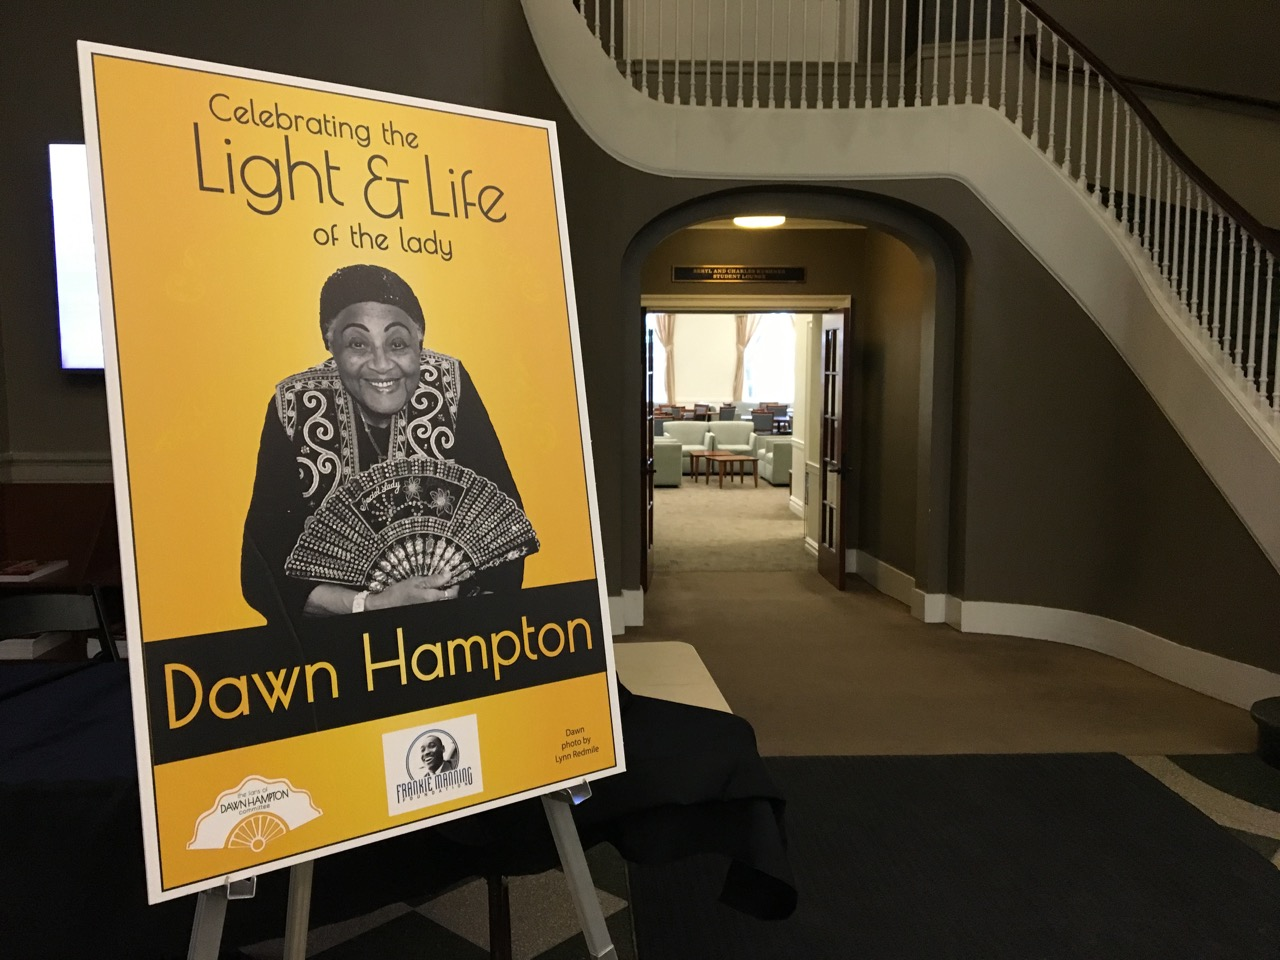 Celebrating dawn hampton